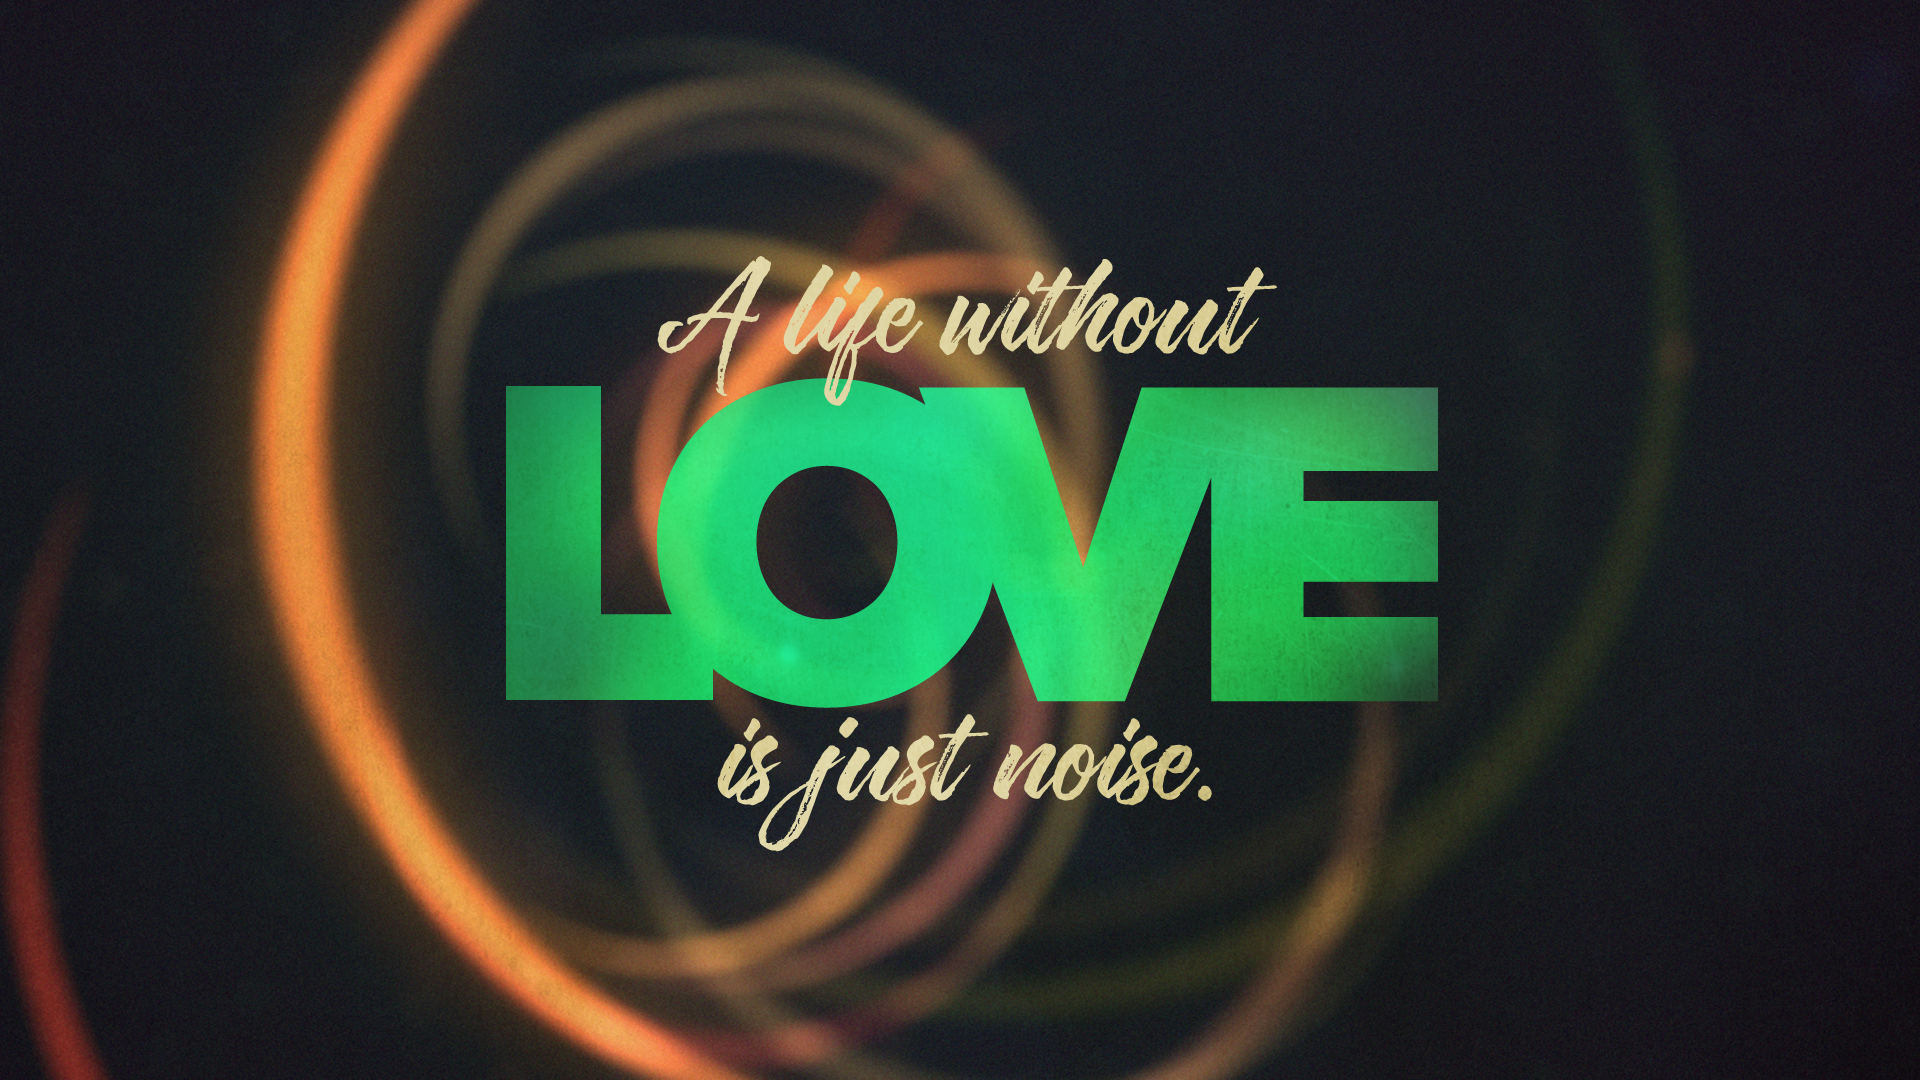 A LIfe Without Love is Just noise